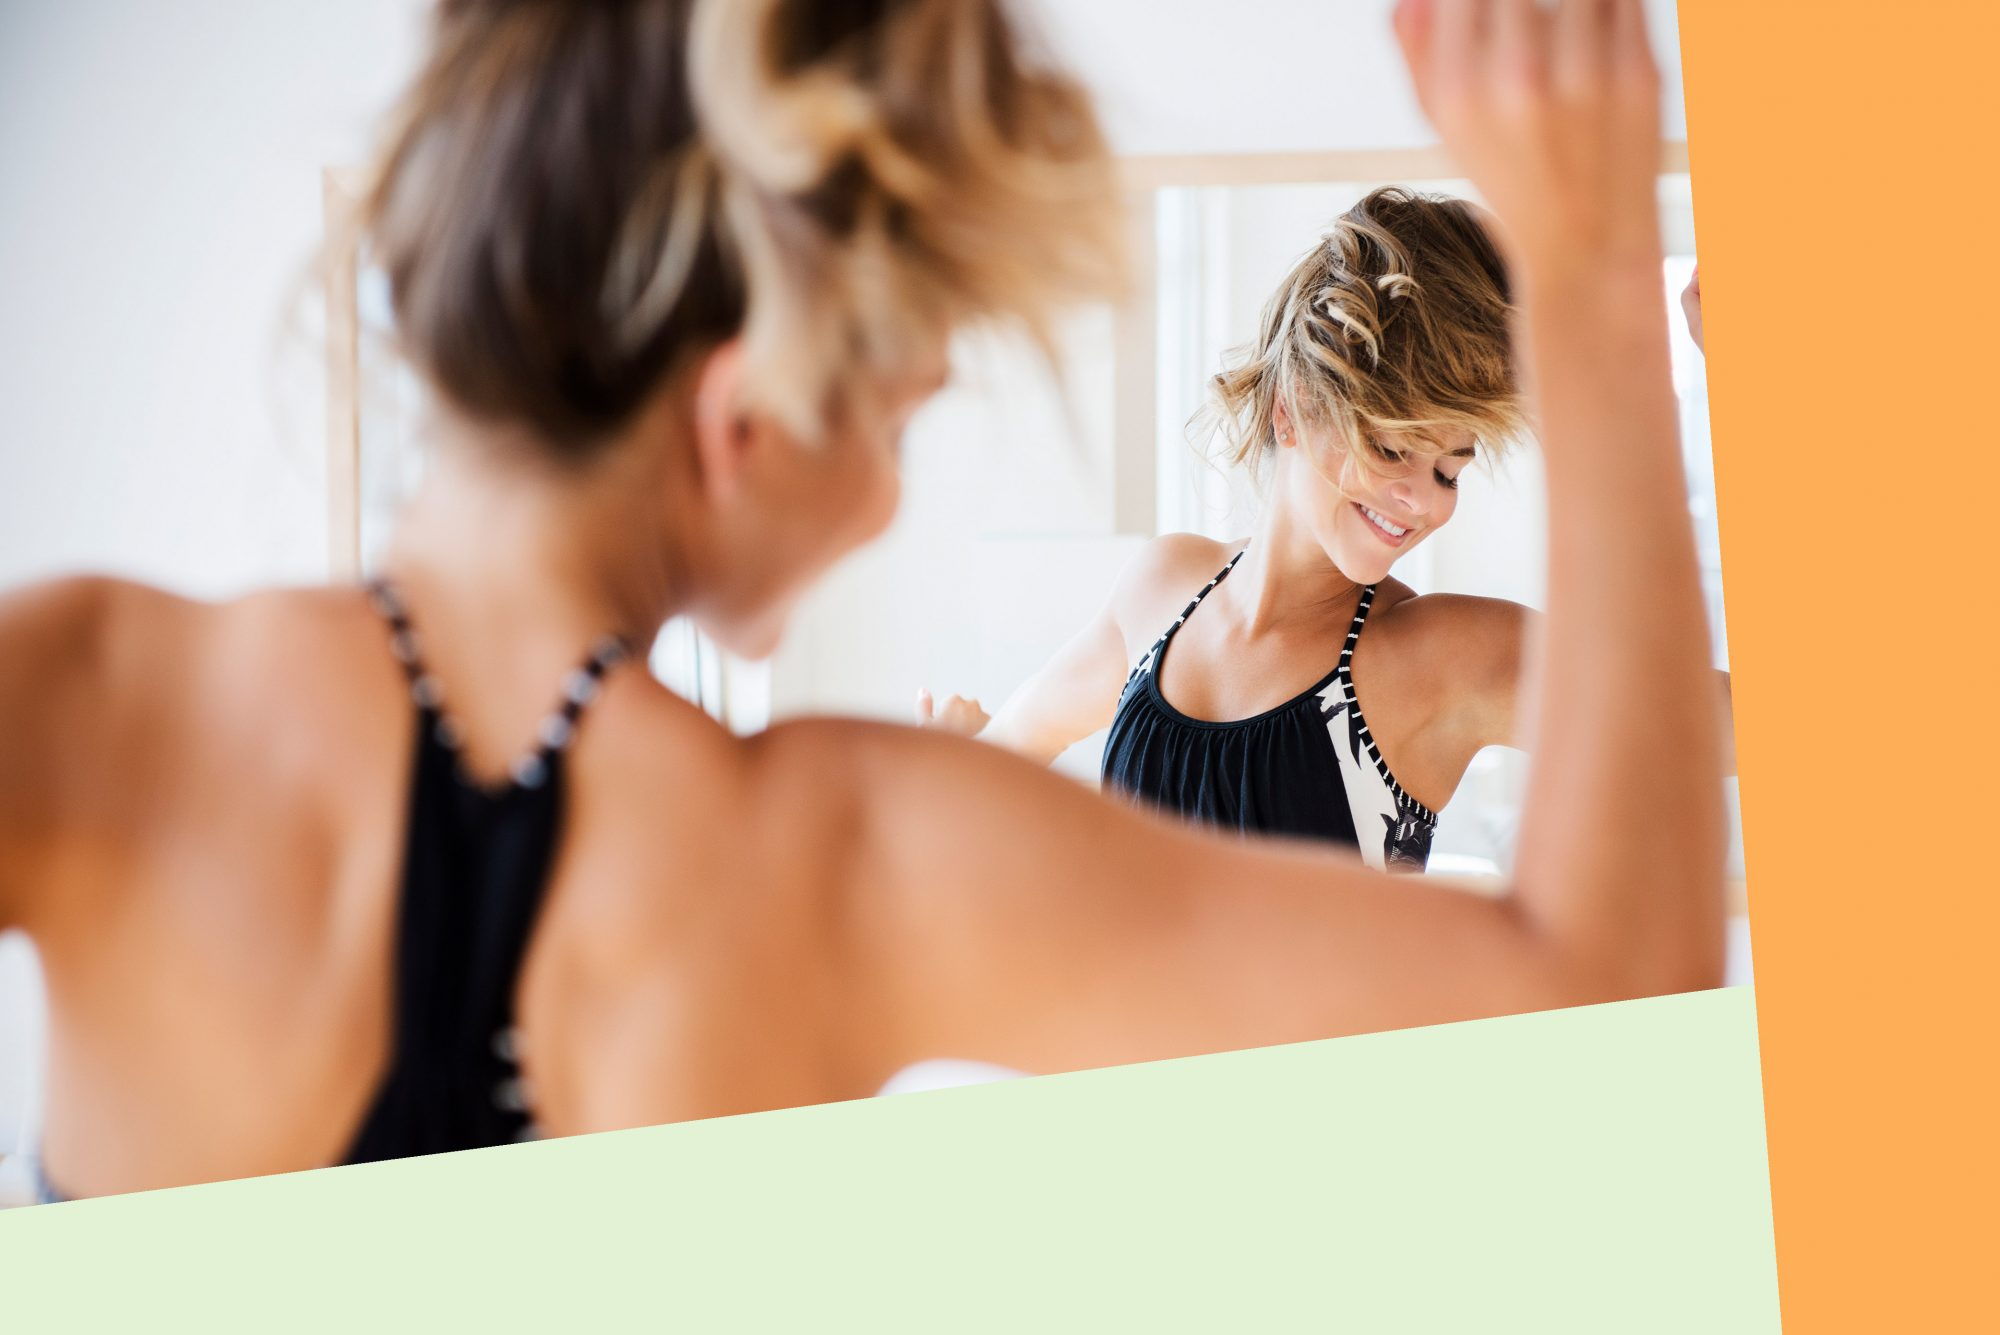 An image of a woman dancing in the mirror.